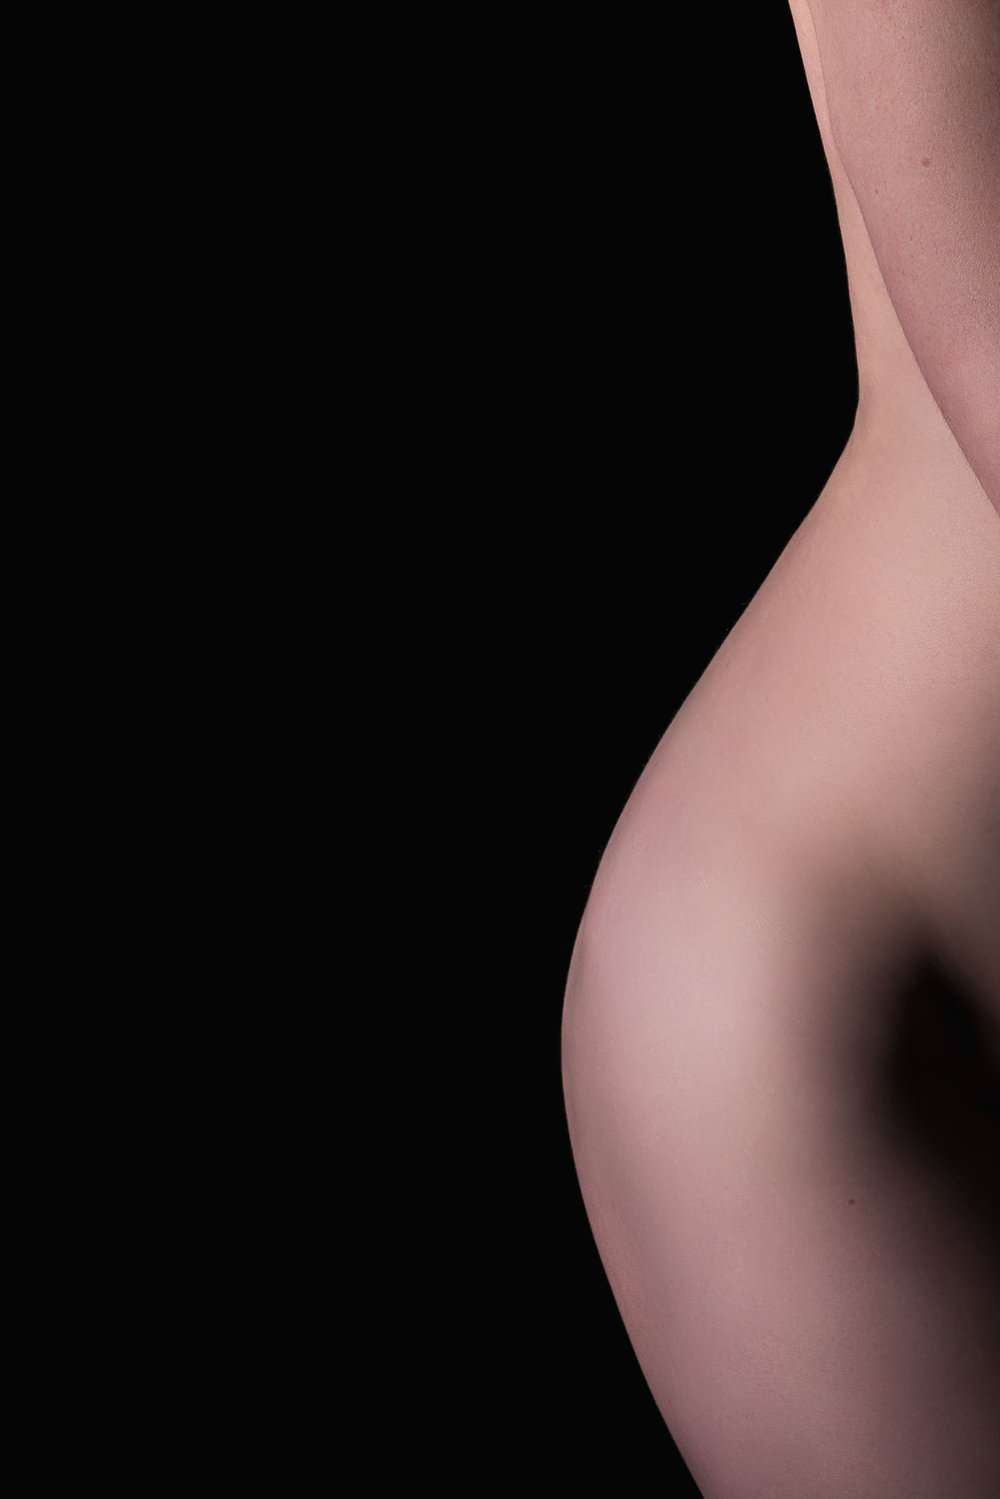 Bodyscape photo of woman's torso